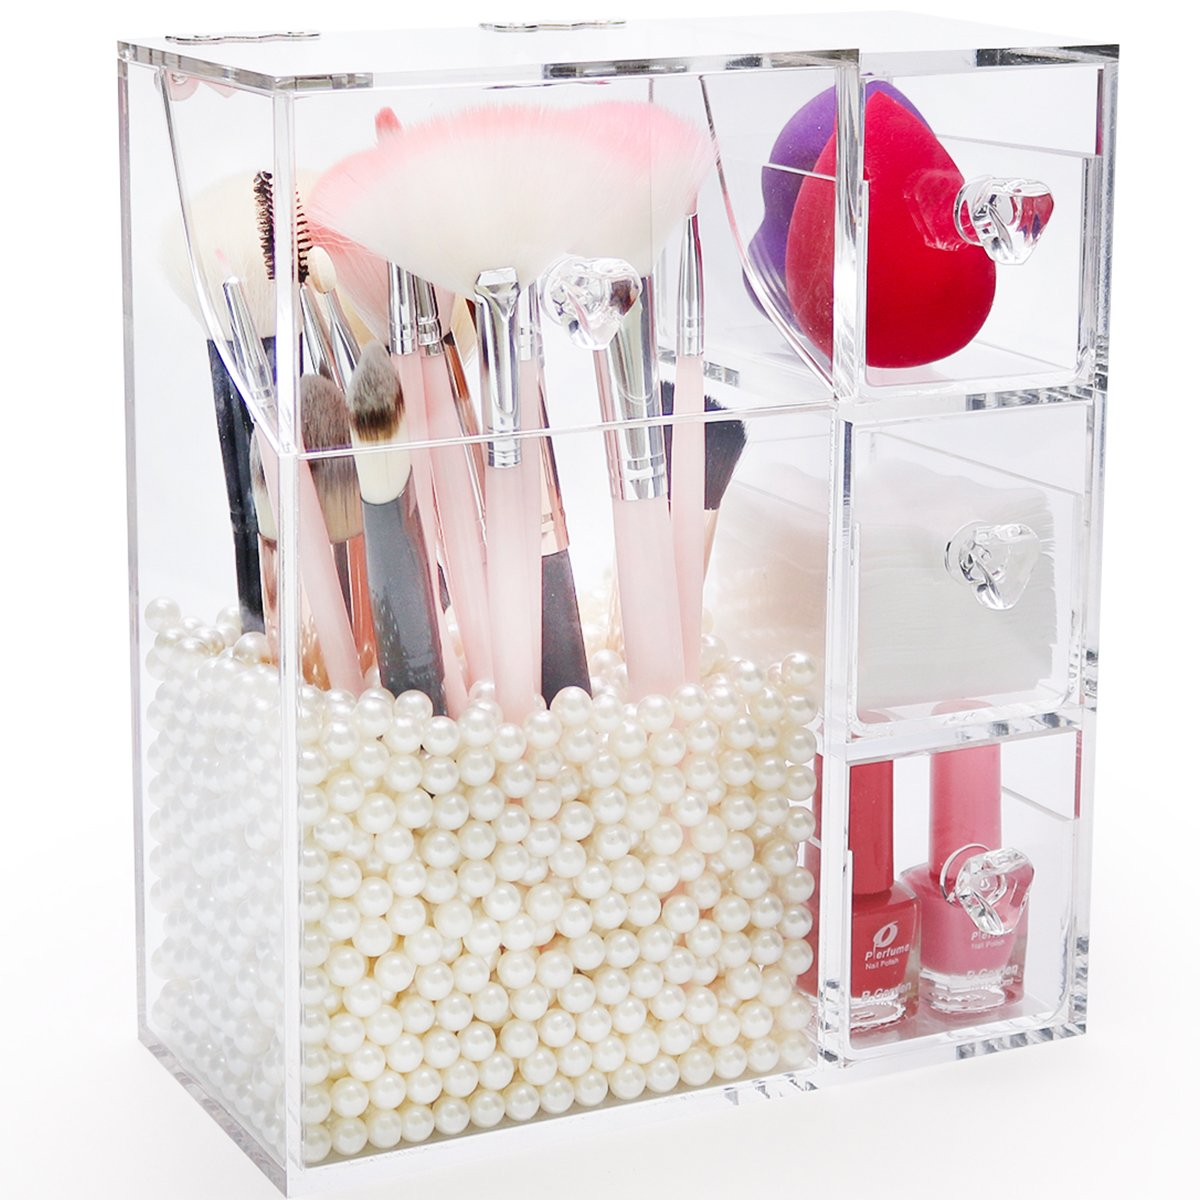 Makeup Brush Holder with Lid,Large Cosmetic Brush Organizer with 3 Drawers,Dust-proof Box with Pearls for Lipsticks,Sponge,Brush,Makeup Tools,Clear - NEWCREA by NEWCREA